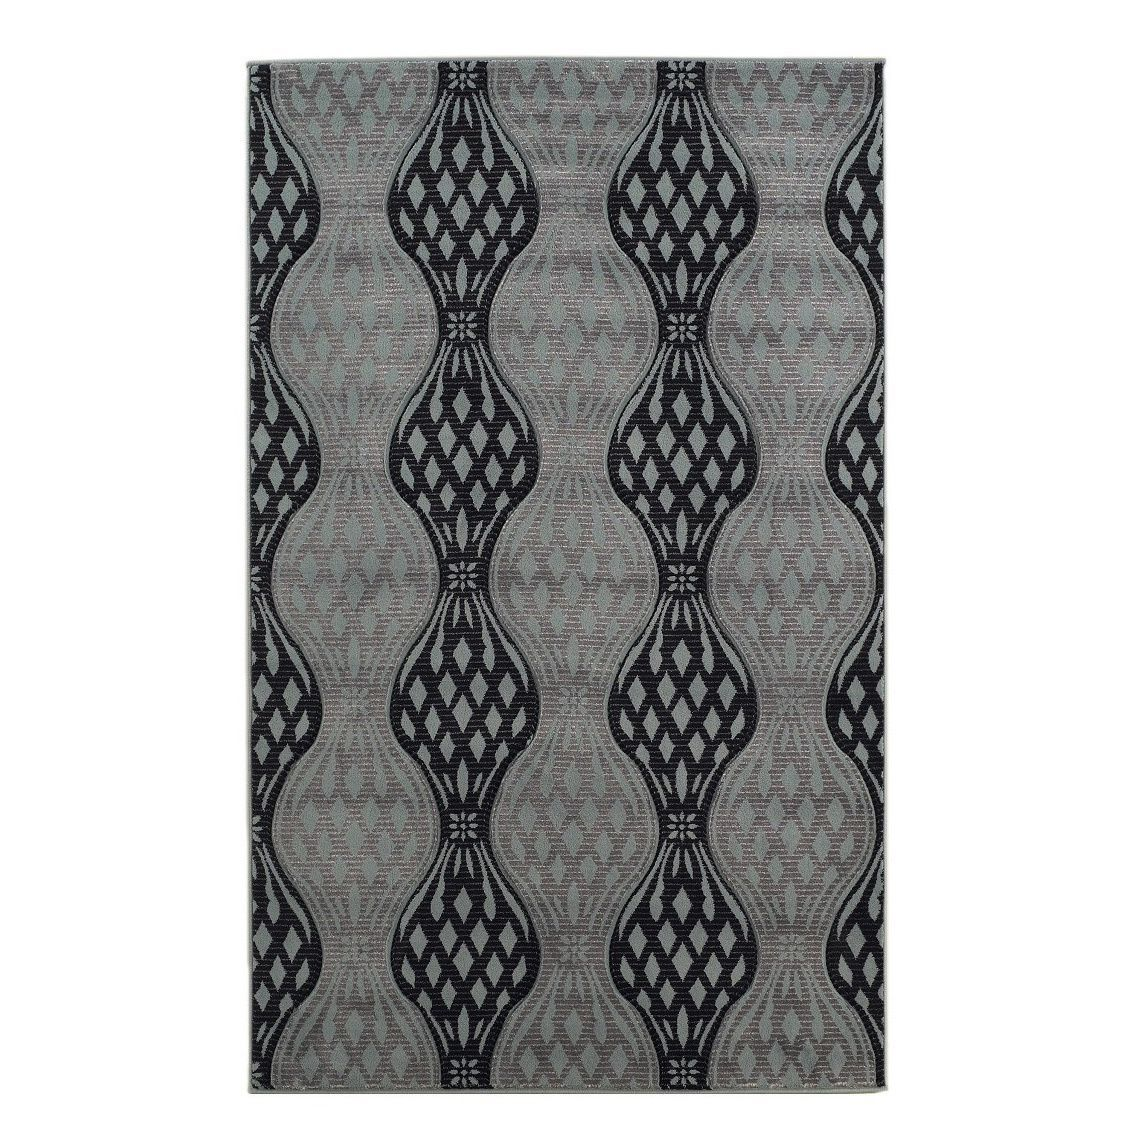 Linon milan collection black turquoise abstract area rug u x u